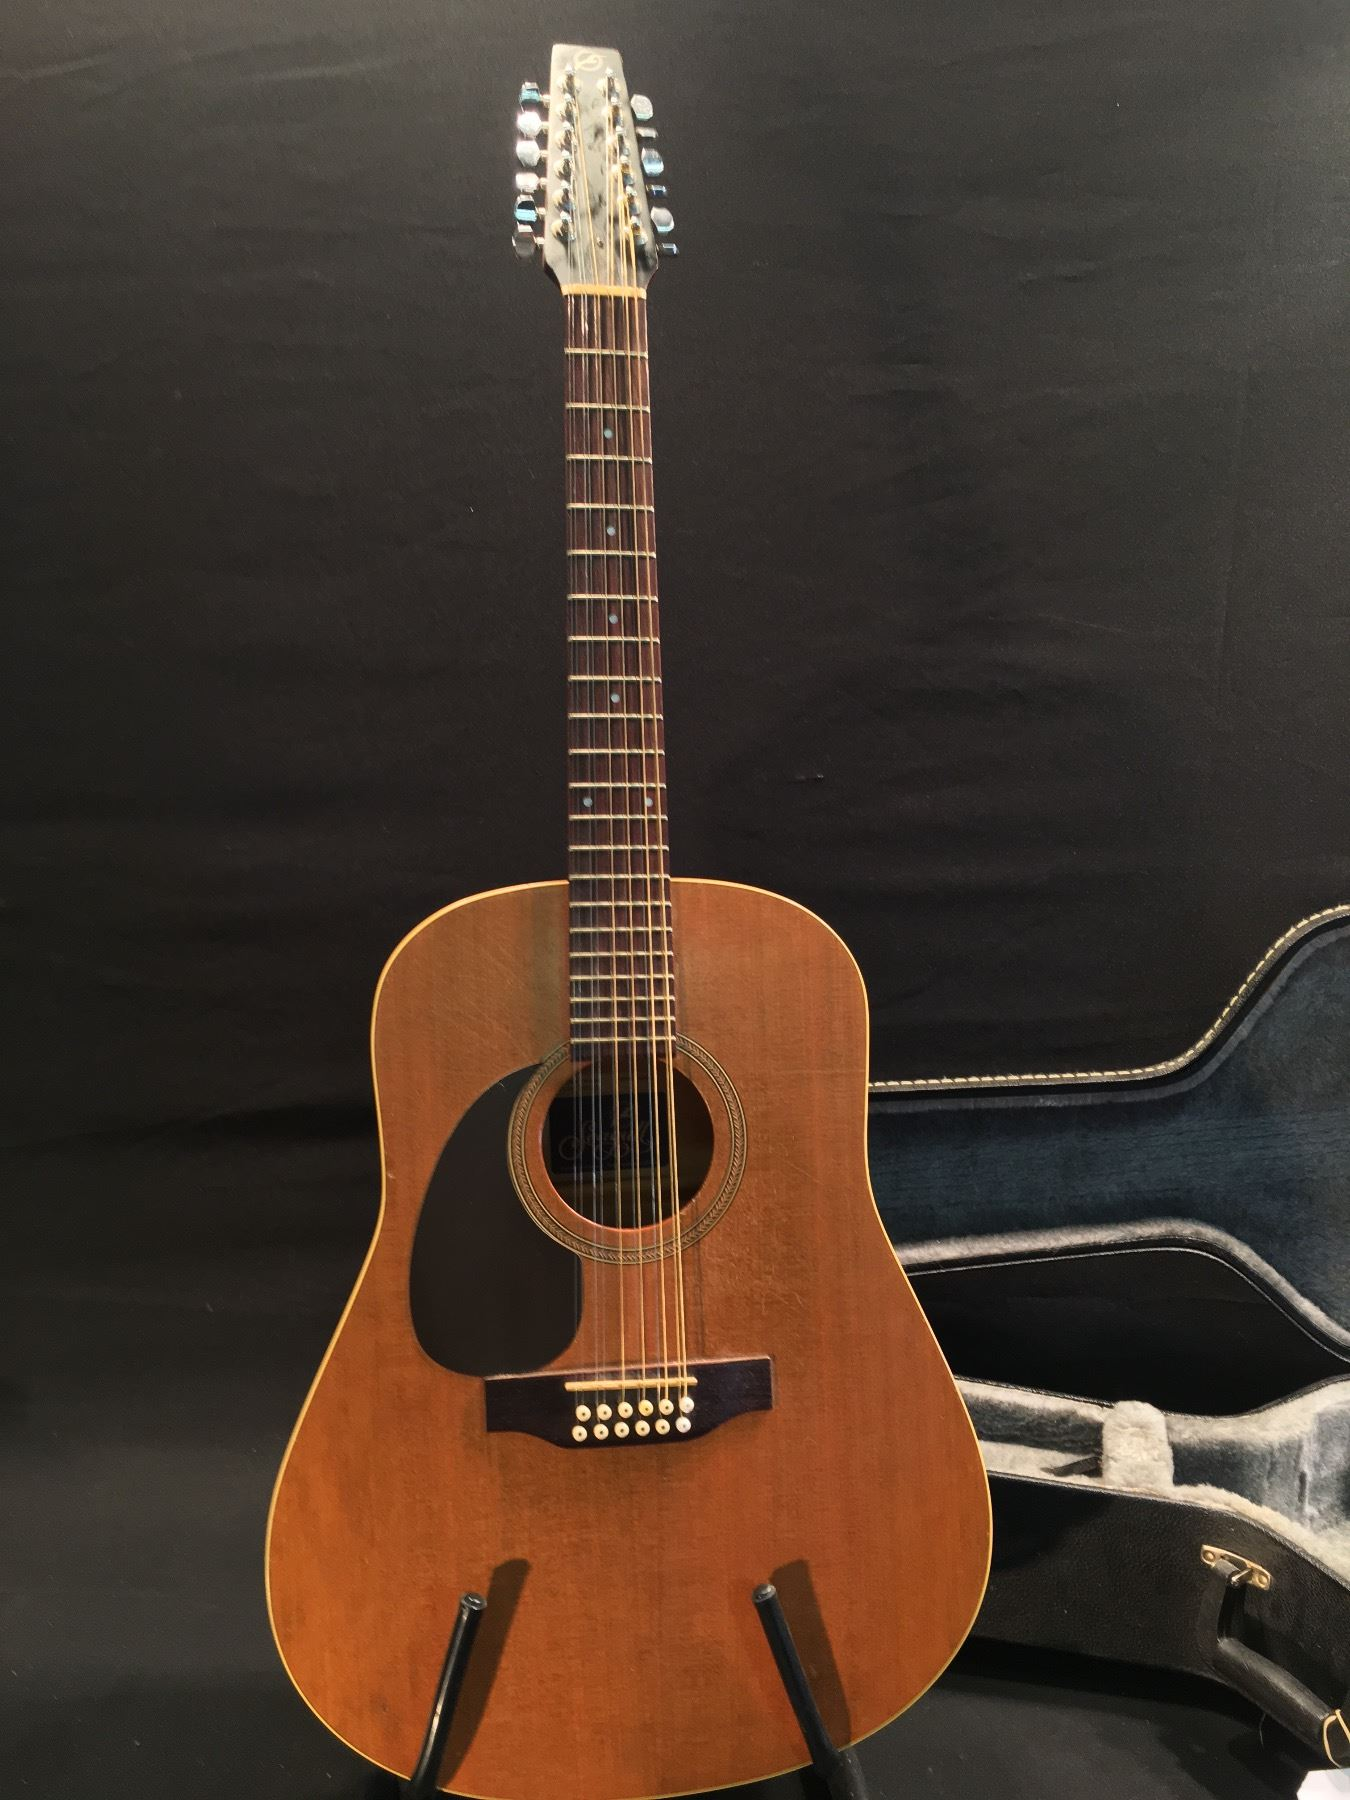 b1b1dac322 Image 1 : SEAGULL PLUS CEDAR 12 STRING ACOUSTIC GUITAR, SERIAL NUMBER NOT  LISTED, ...